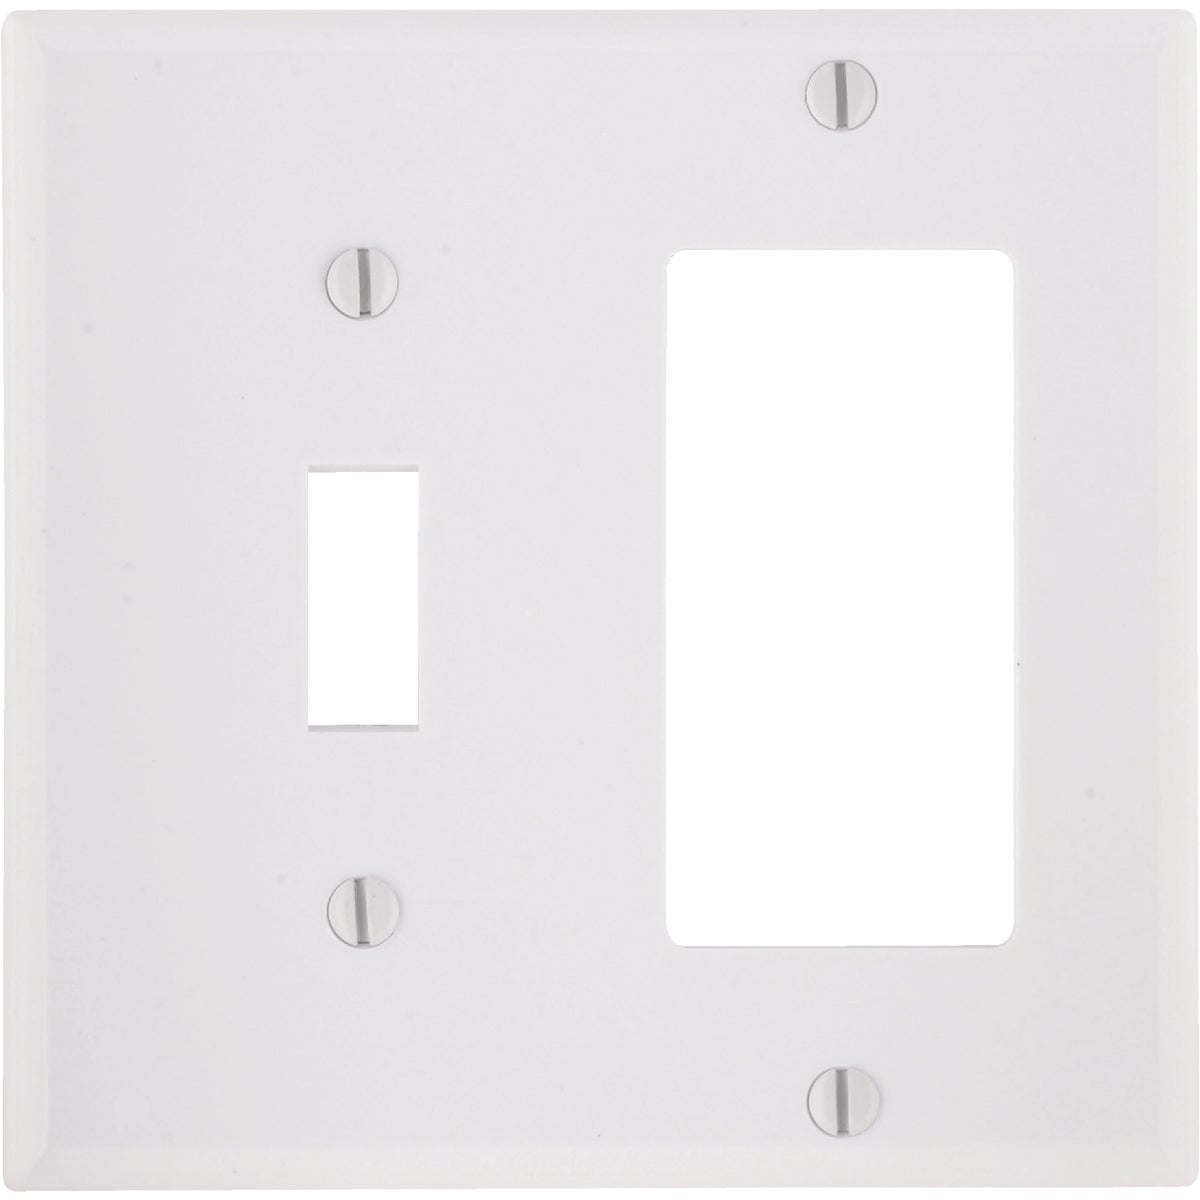 WHT COMBO WALL PLATE - 80405W by Leviton Mfg Co